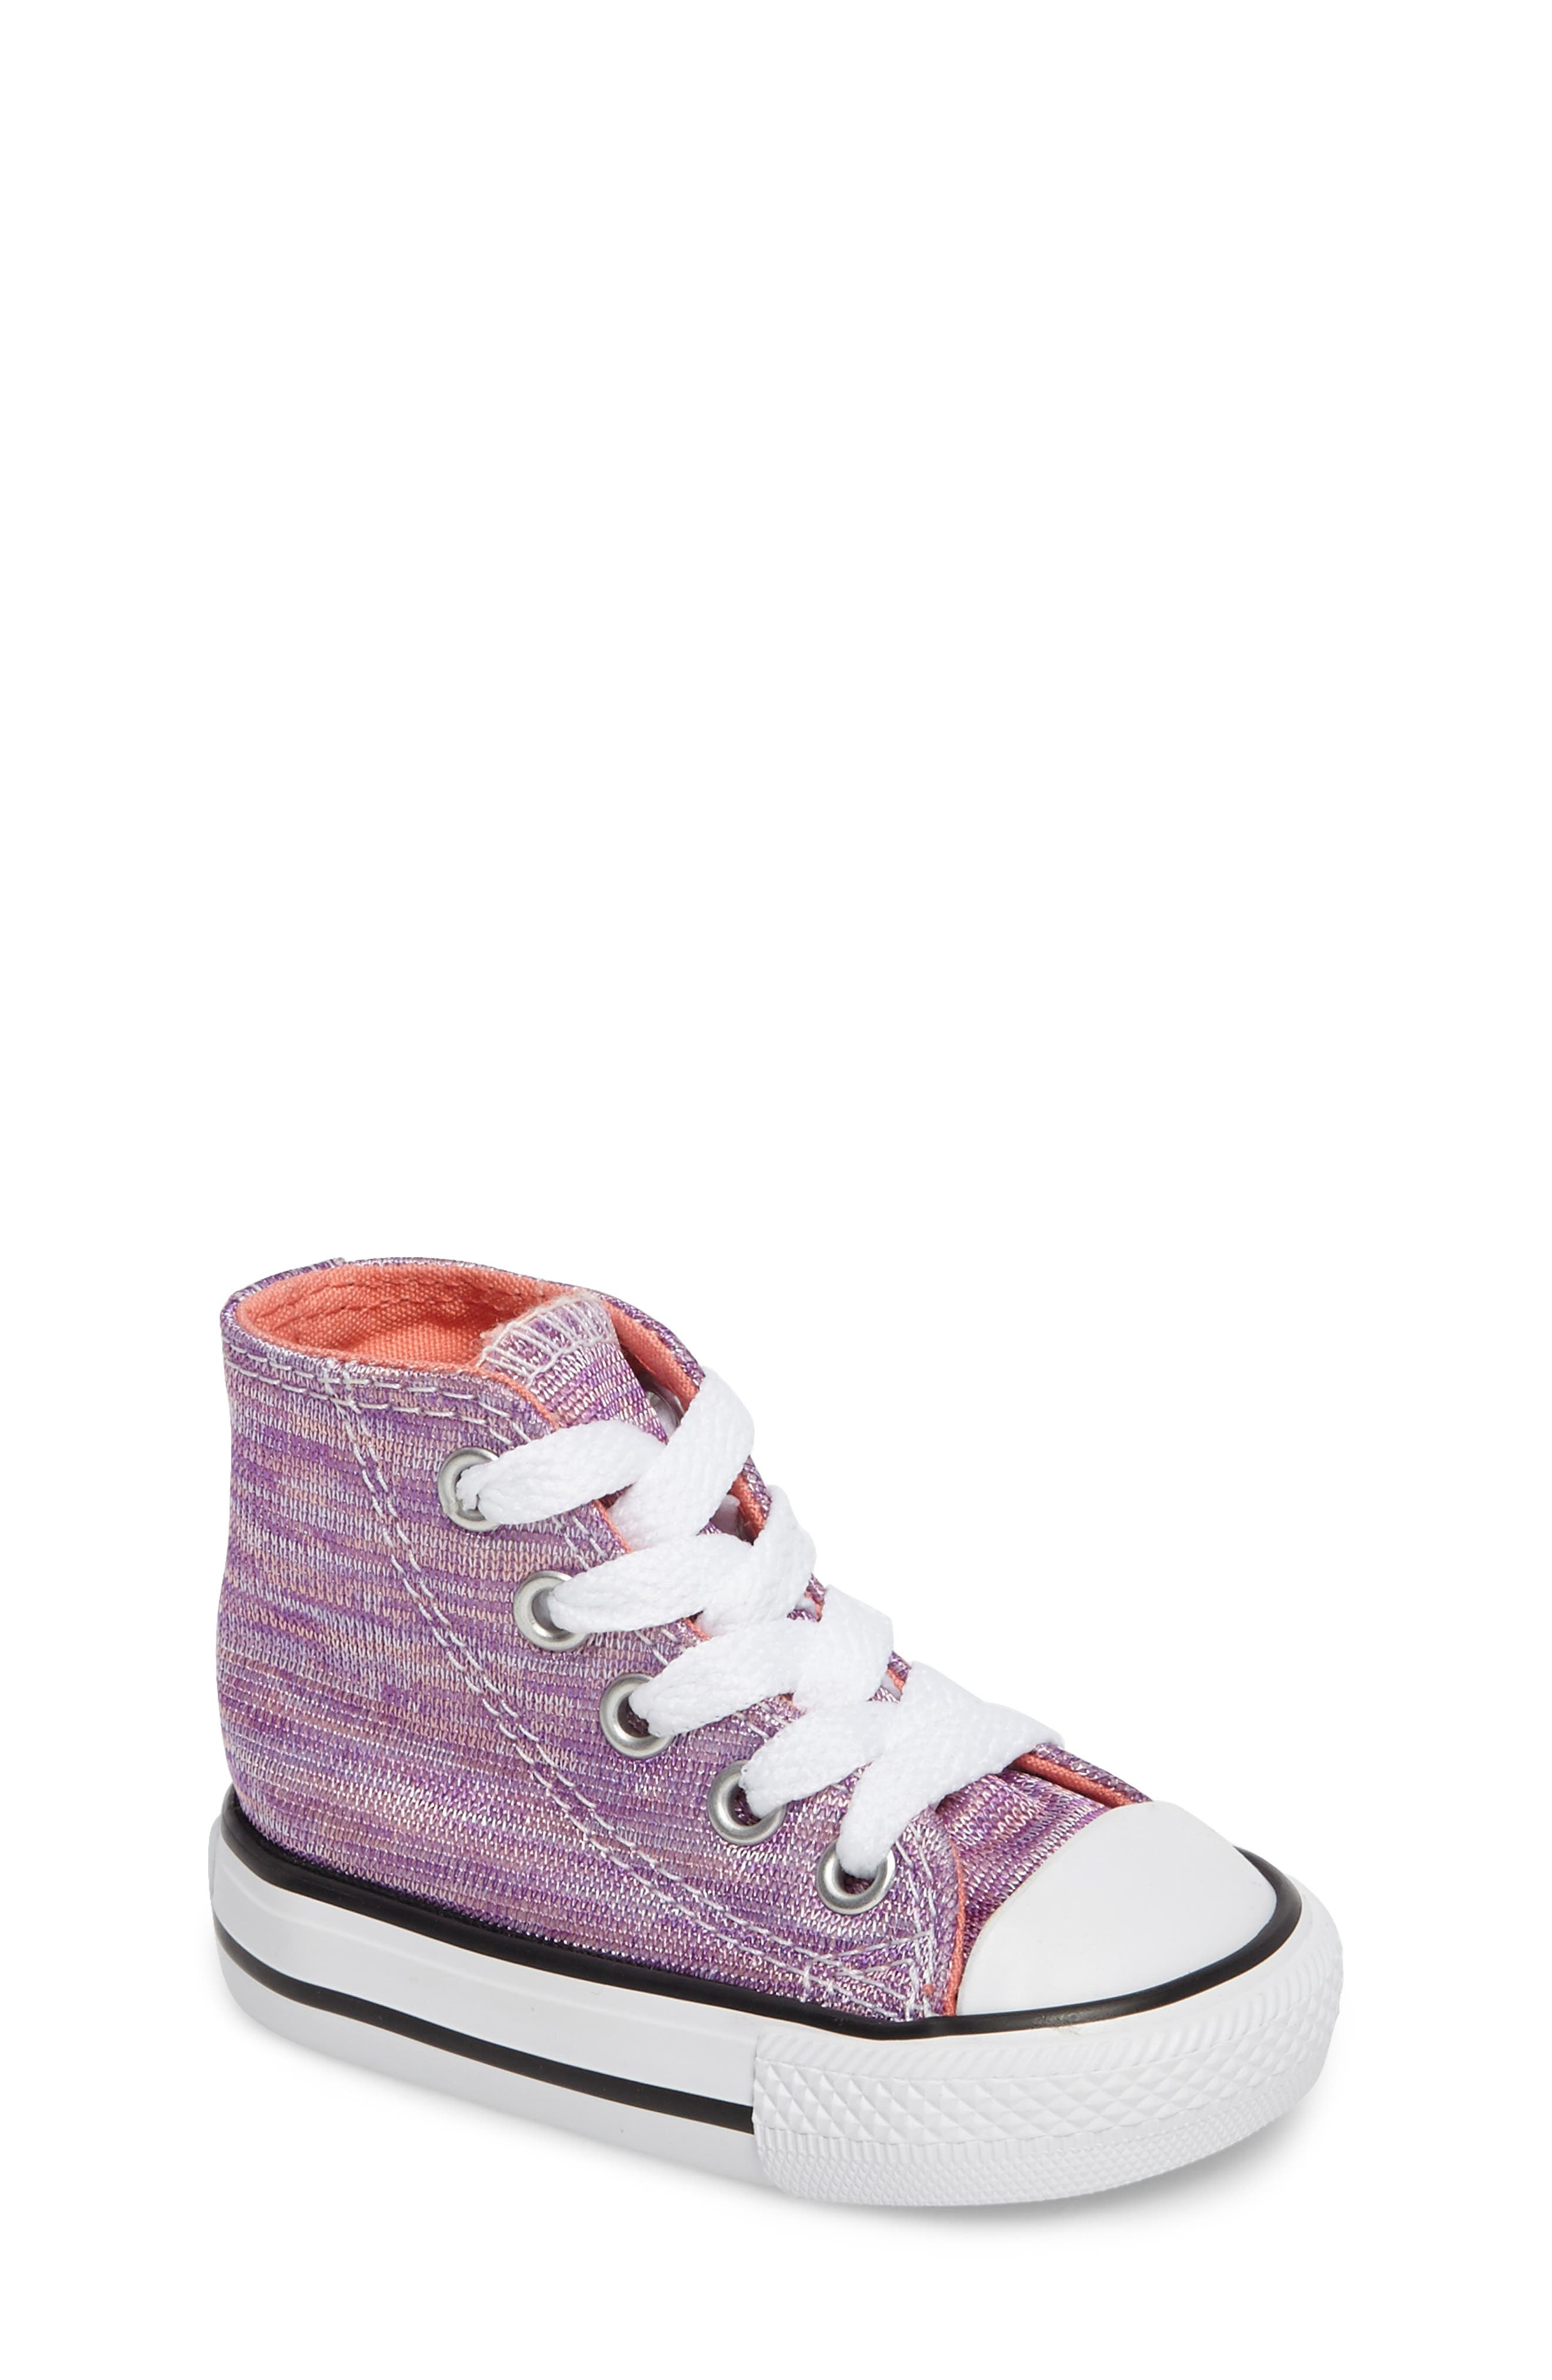 Chuck Taylor<sup>®</sup> All Star<sup>®</sup> Knit High Top Sneaker,                             Main thumbnail 1, color,                             Bright Violet Textile